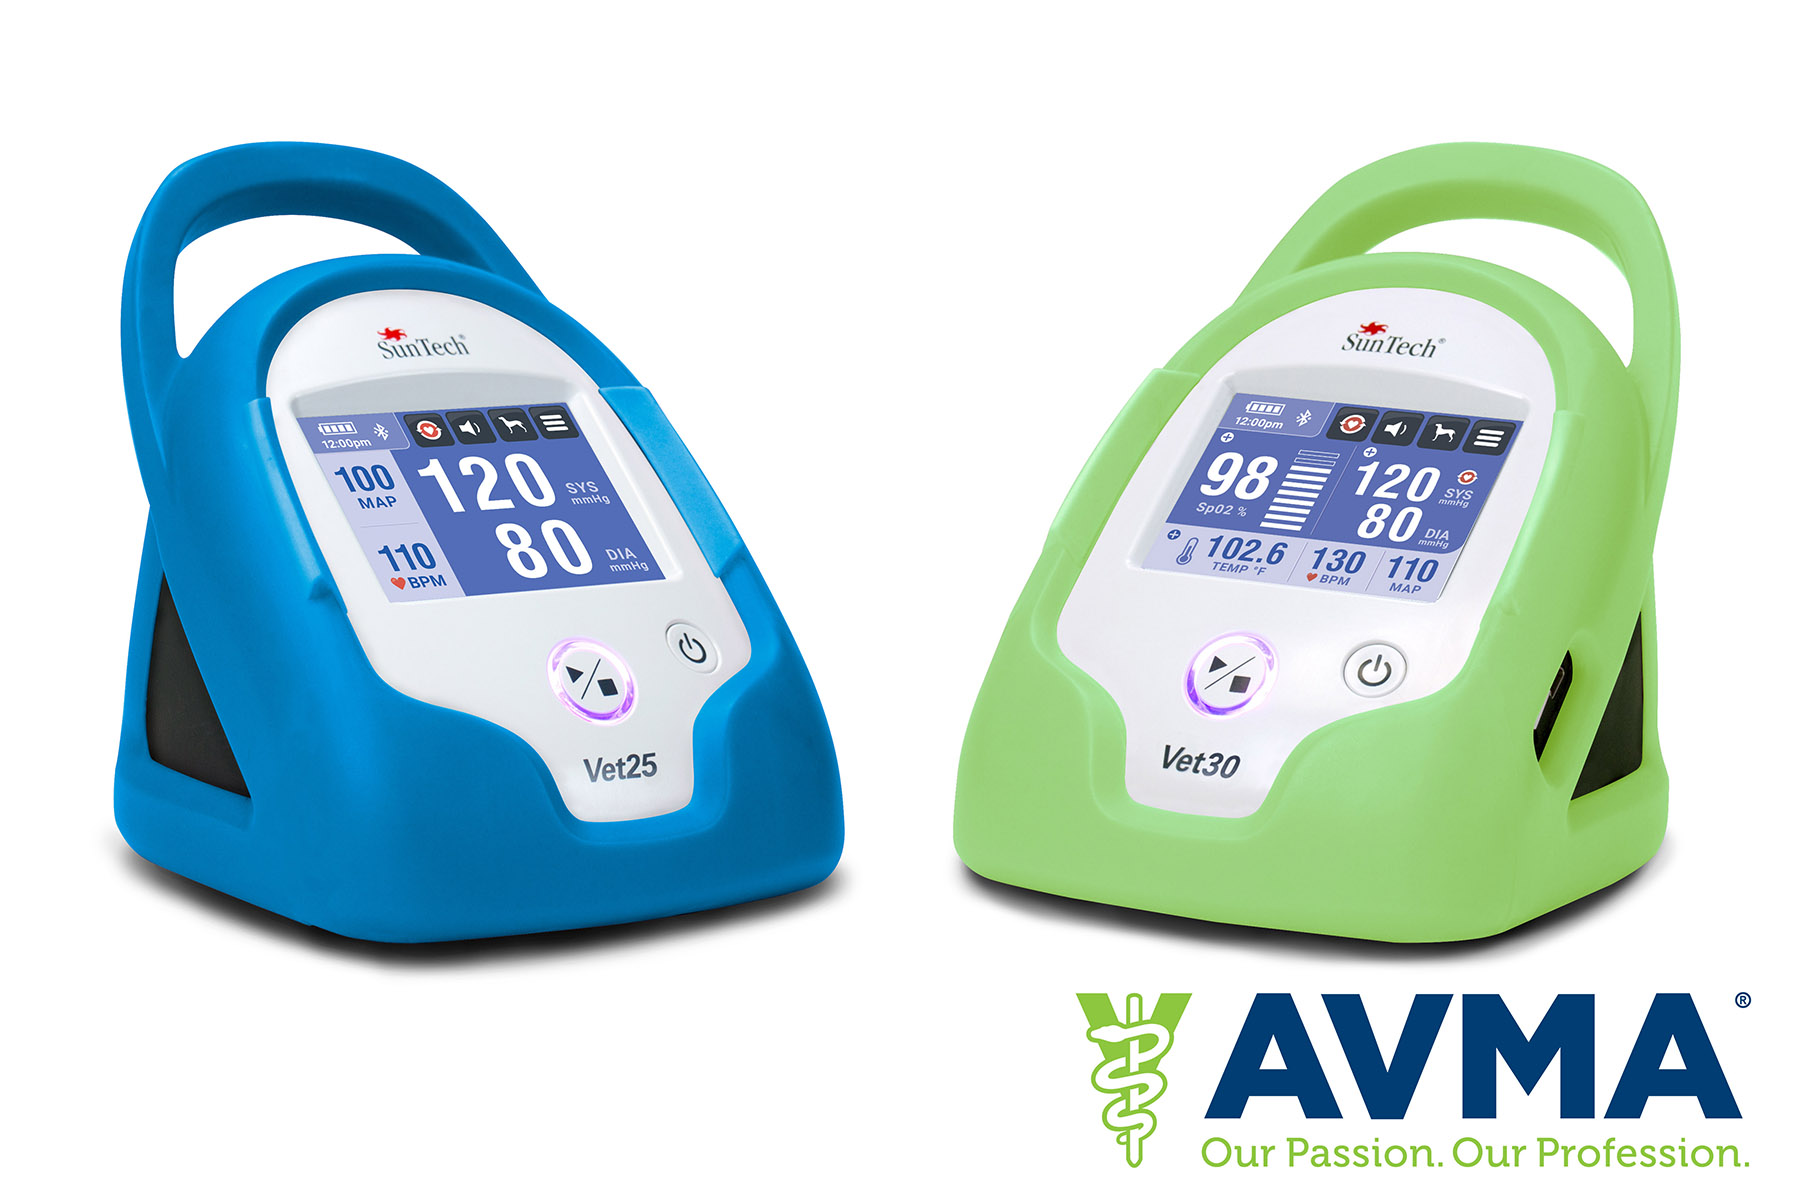 Introducing the SunTech Vet25 and Vet30